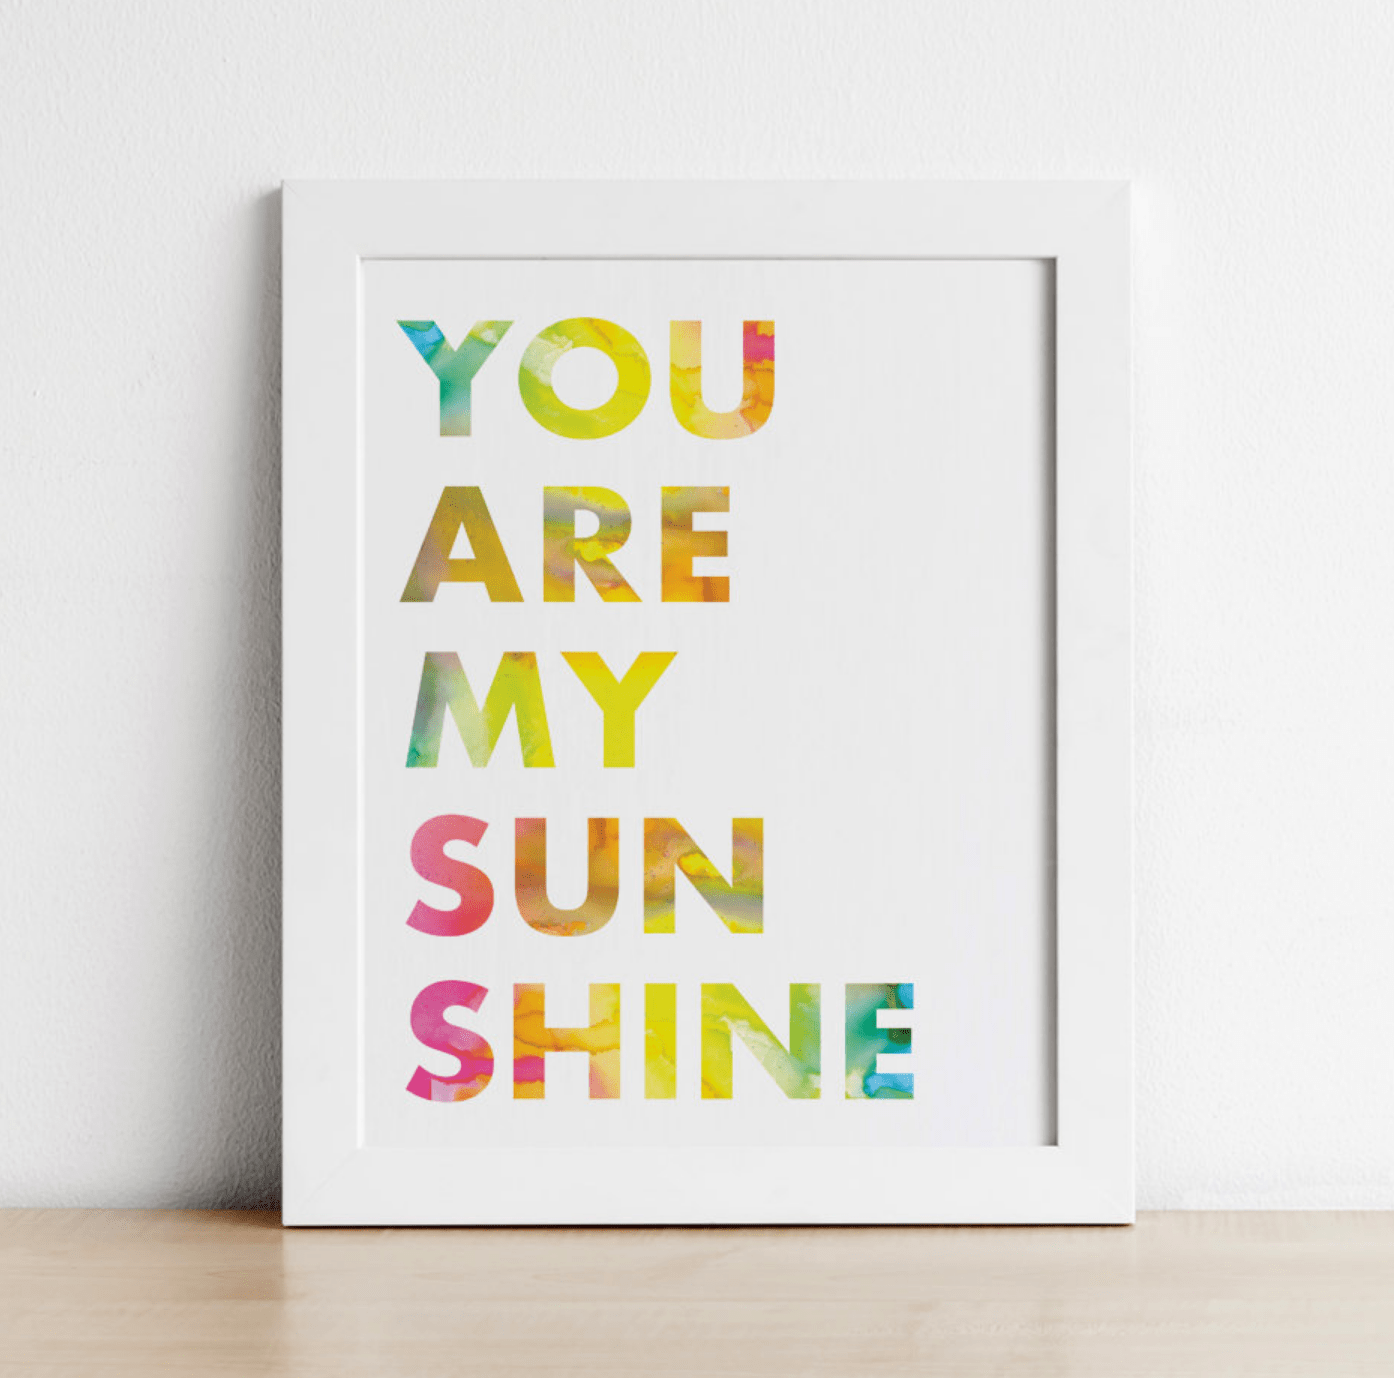 photograph relating to You Are My Sunshine Printable known as Yourself Are My Sun Wall Artwork Printable within just Rainbow Fashion